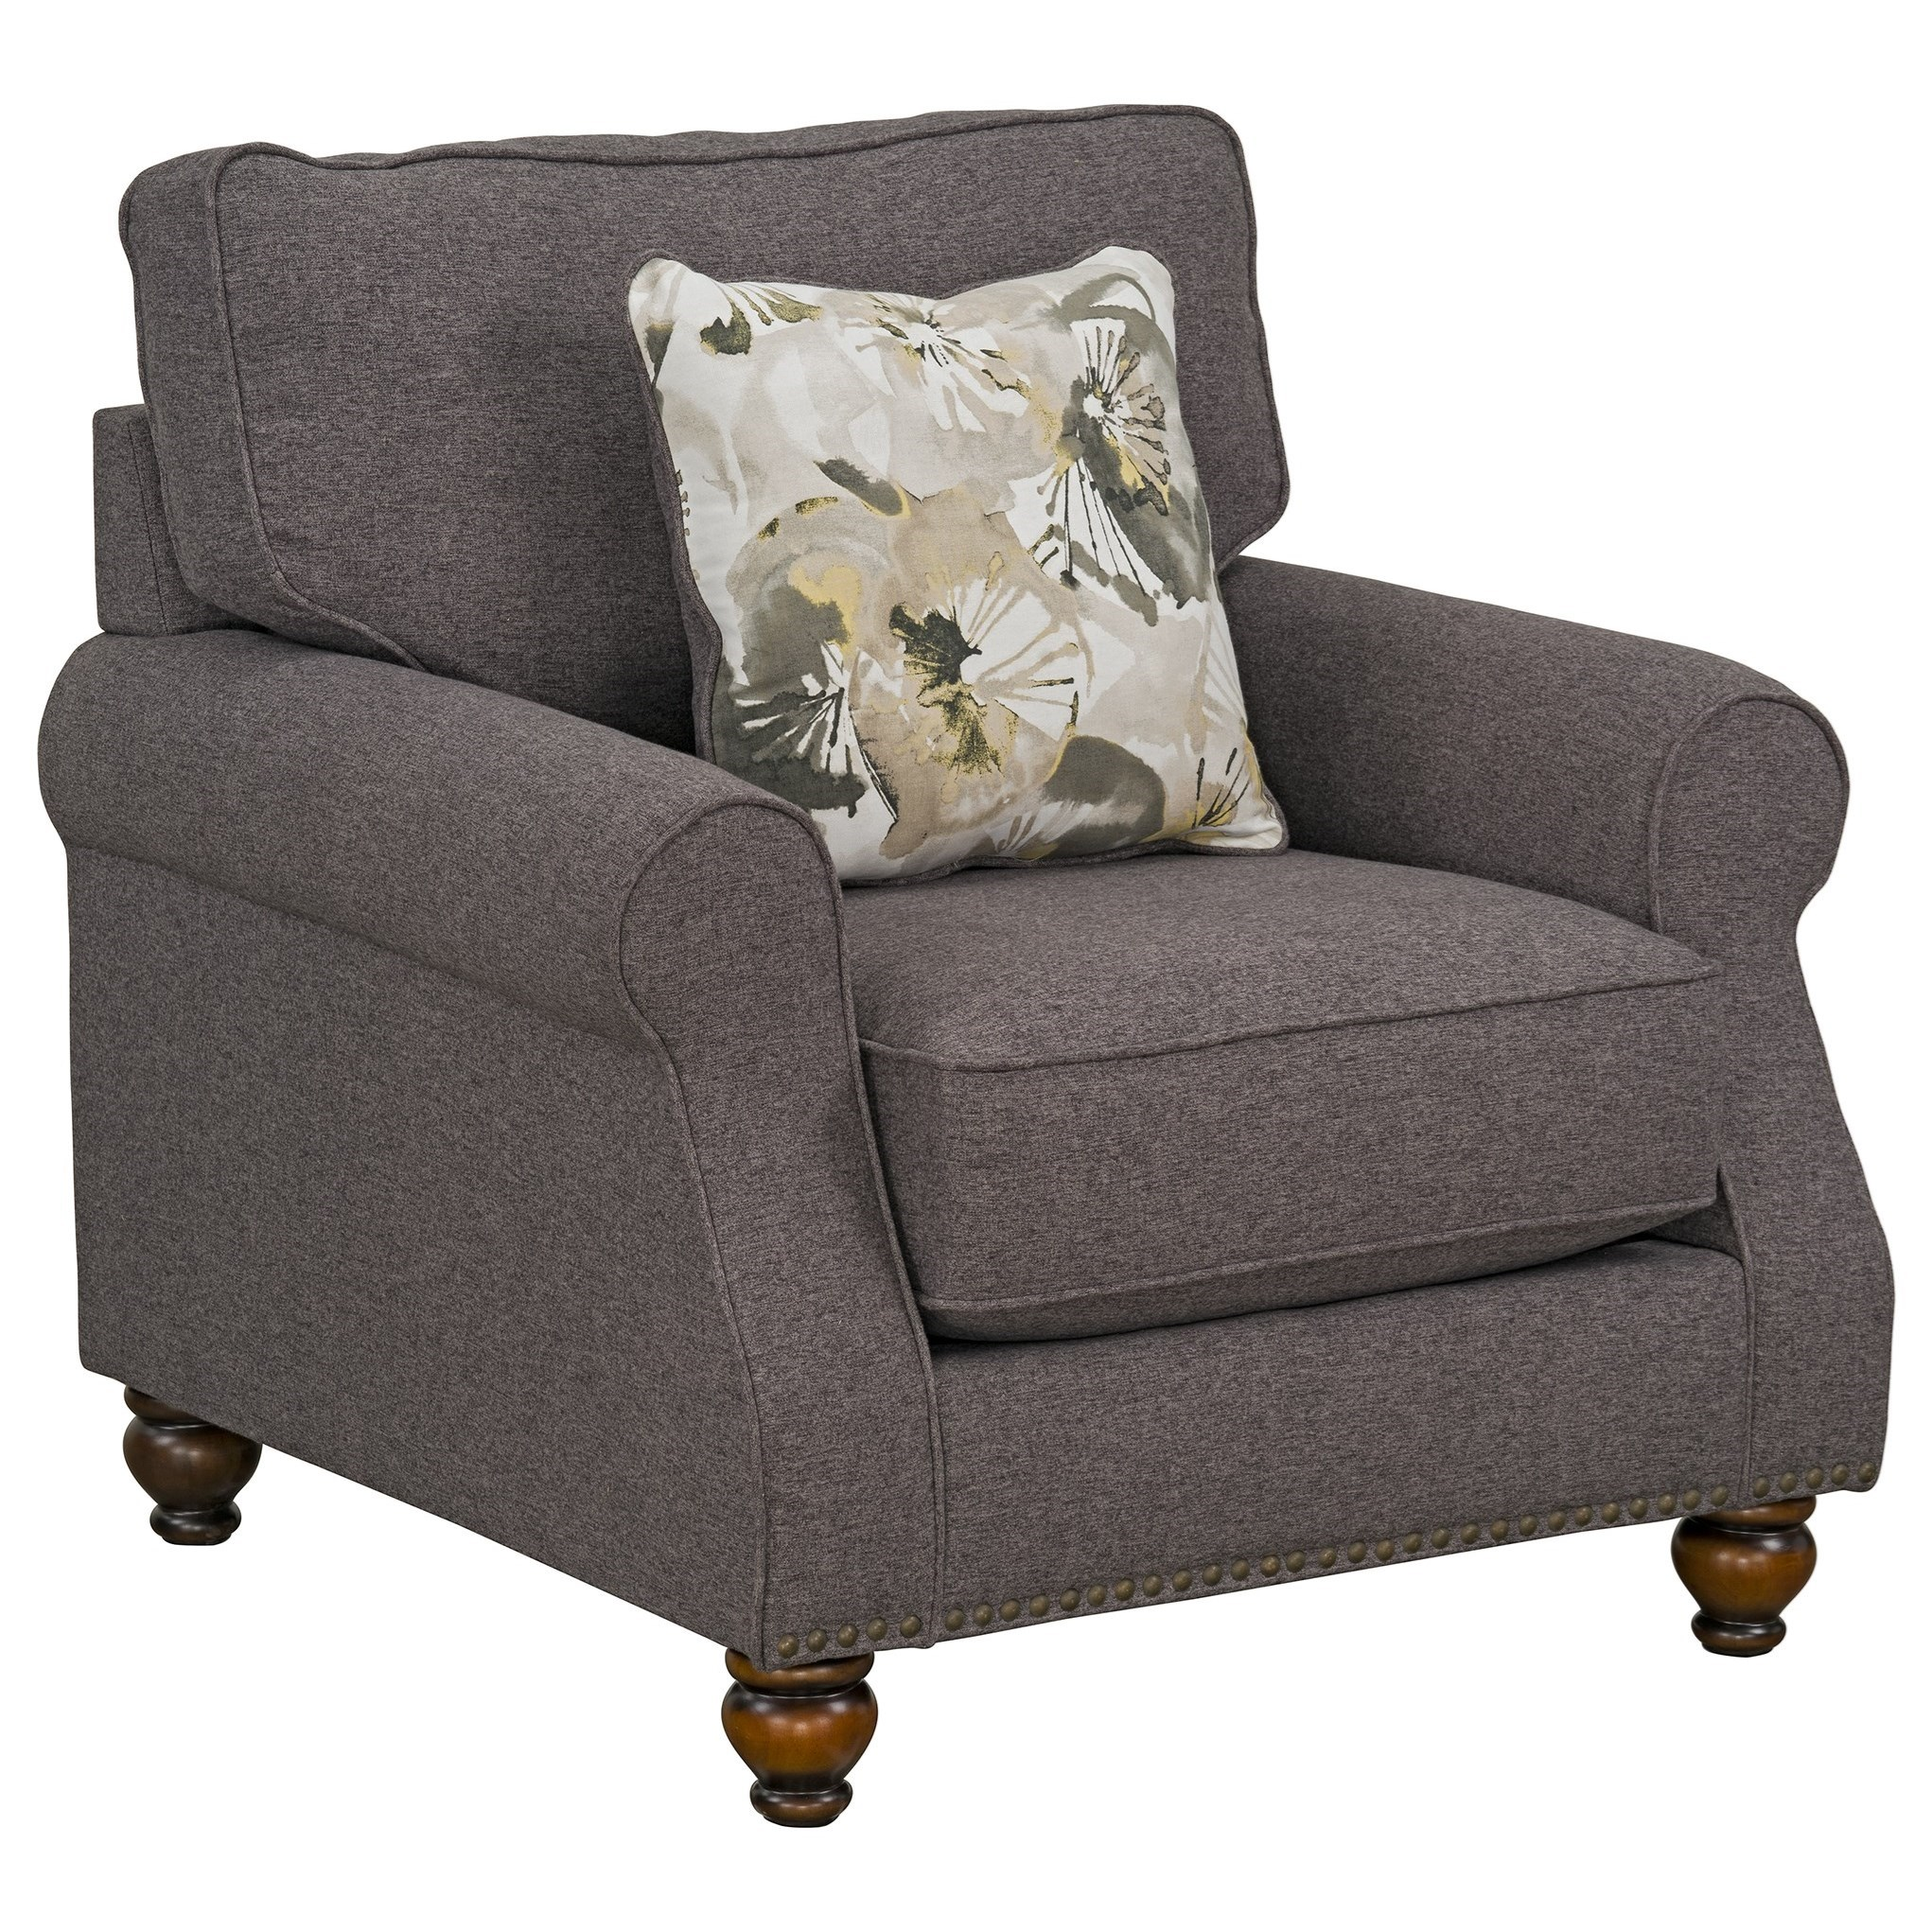 Angelina Upholstered Chair by Standard Furniture at Beds N Stuff